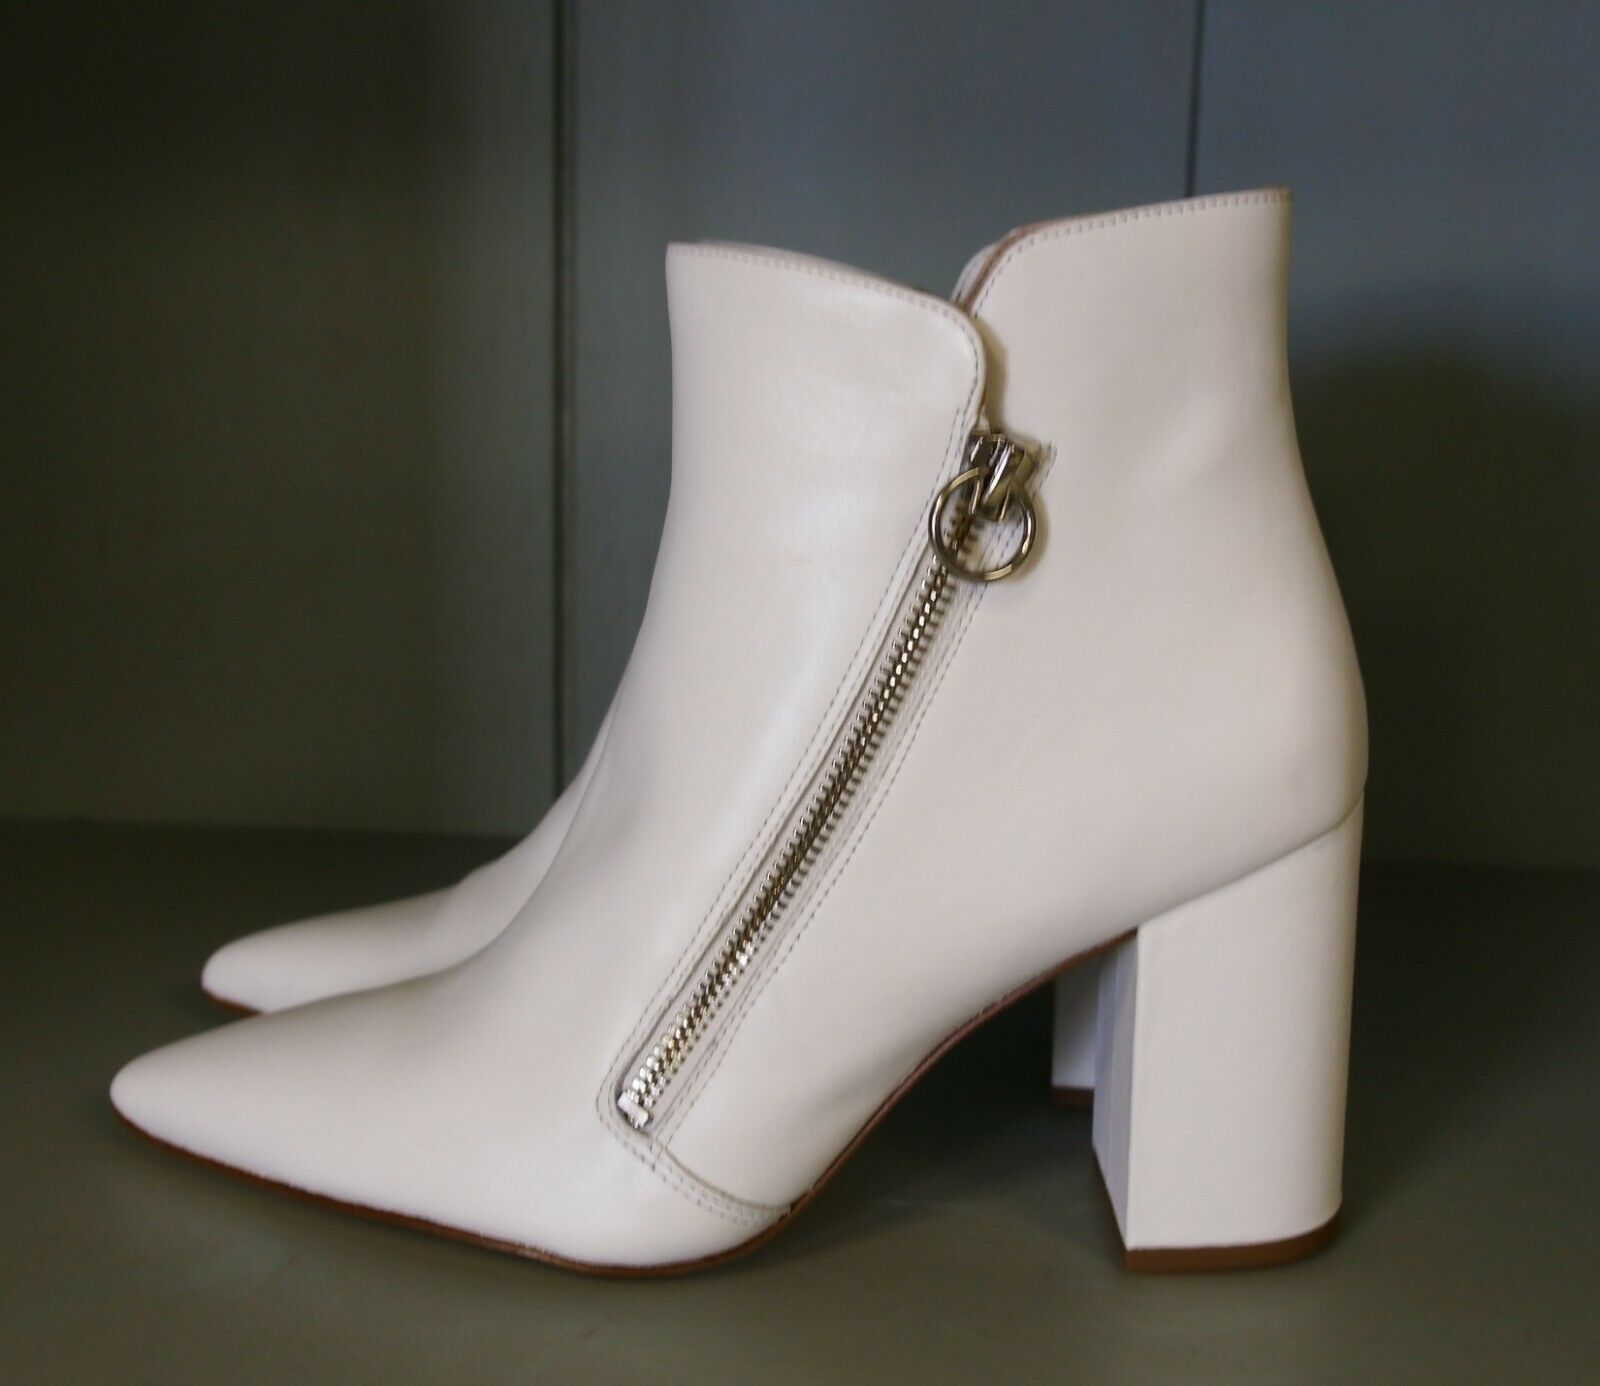 A5406 New Women's Nine West Russity White Leather Ankle Booties 8 M